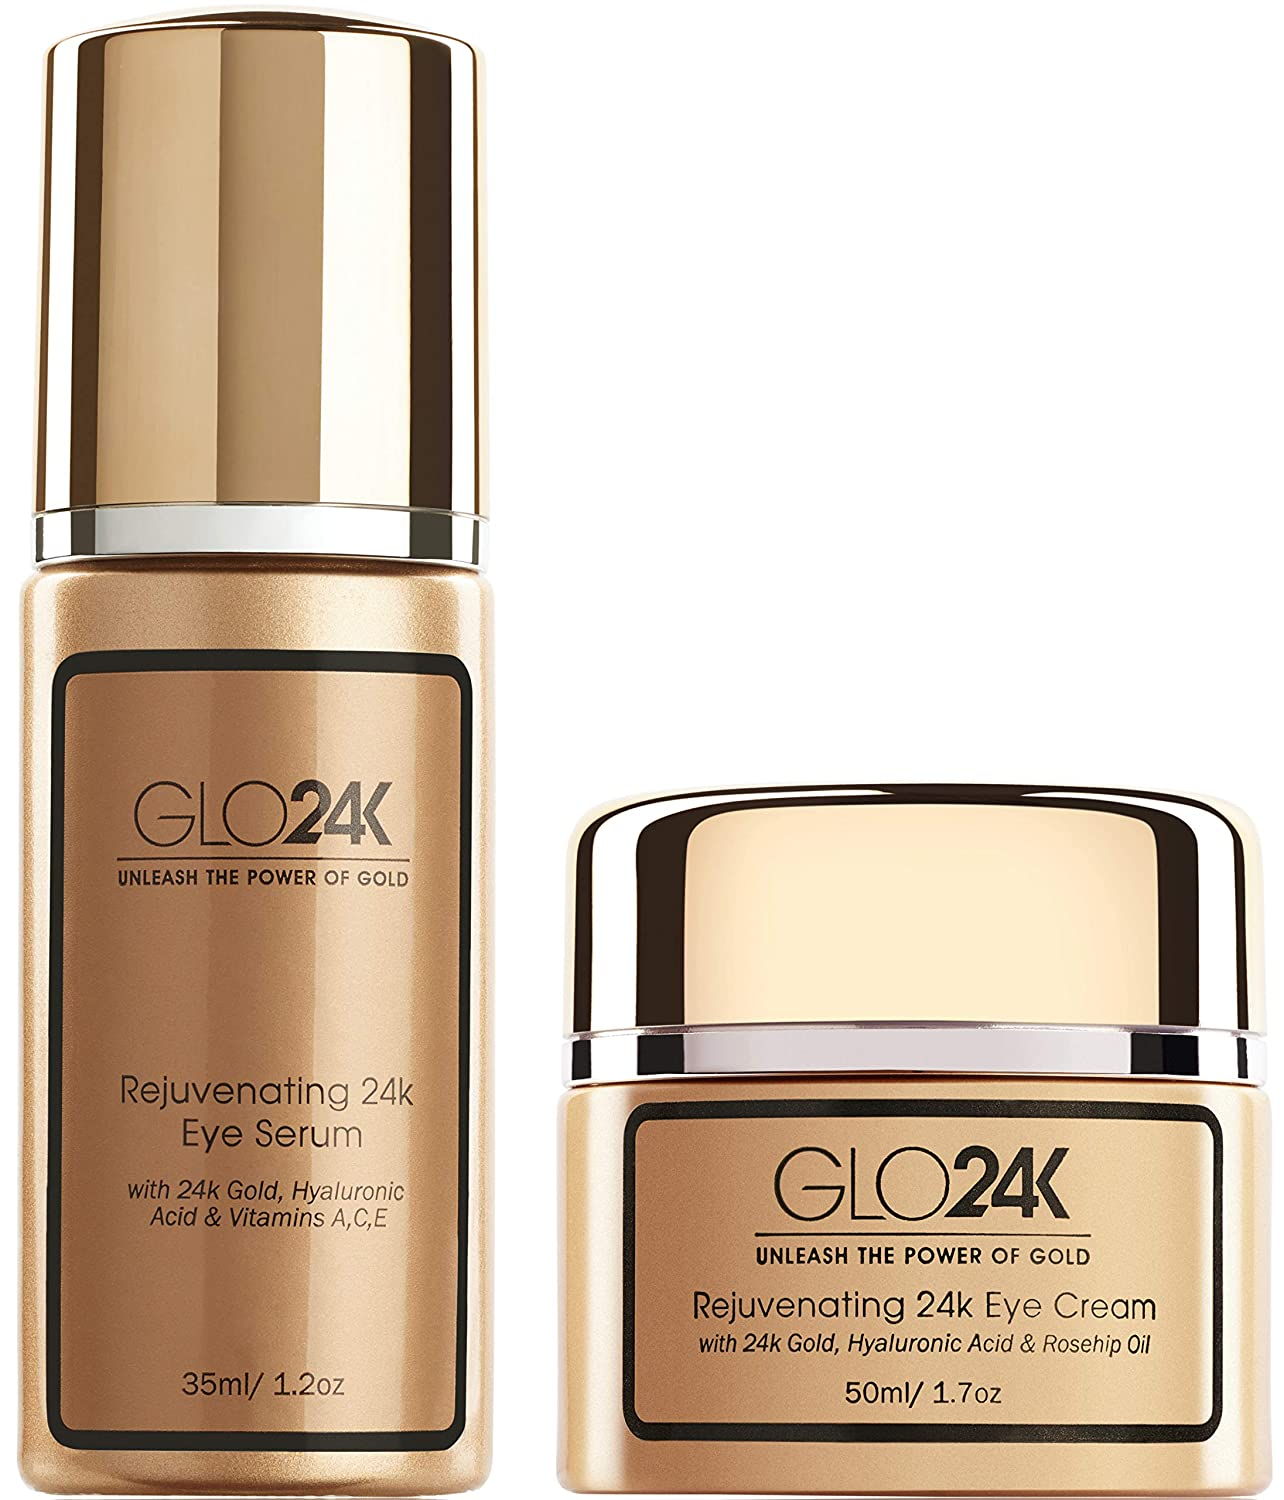 GLO24K Rejuvenating 24k Eye Cream and Serum With 24k Gold, Hyaluronic Acid, Vitamins A,C,E